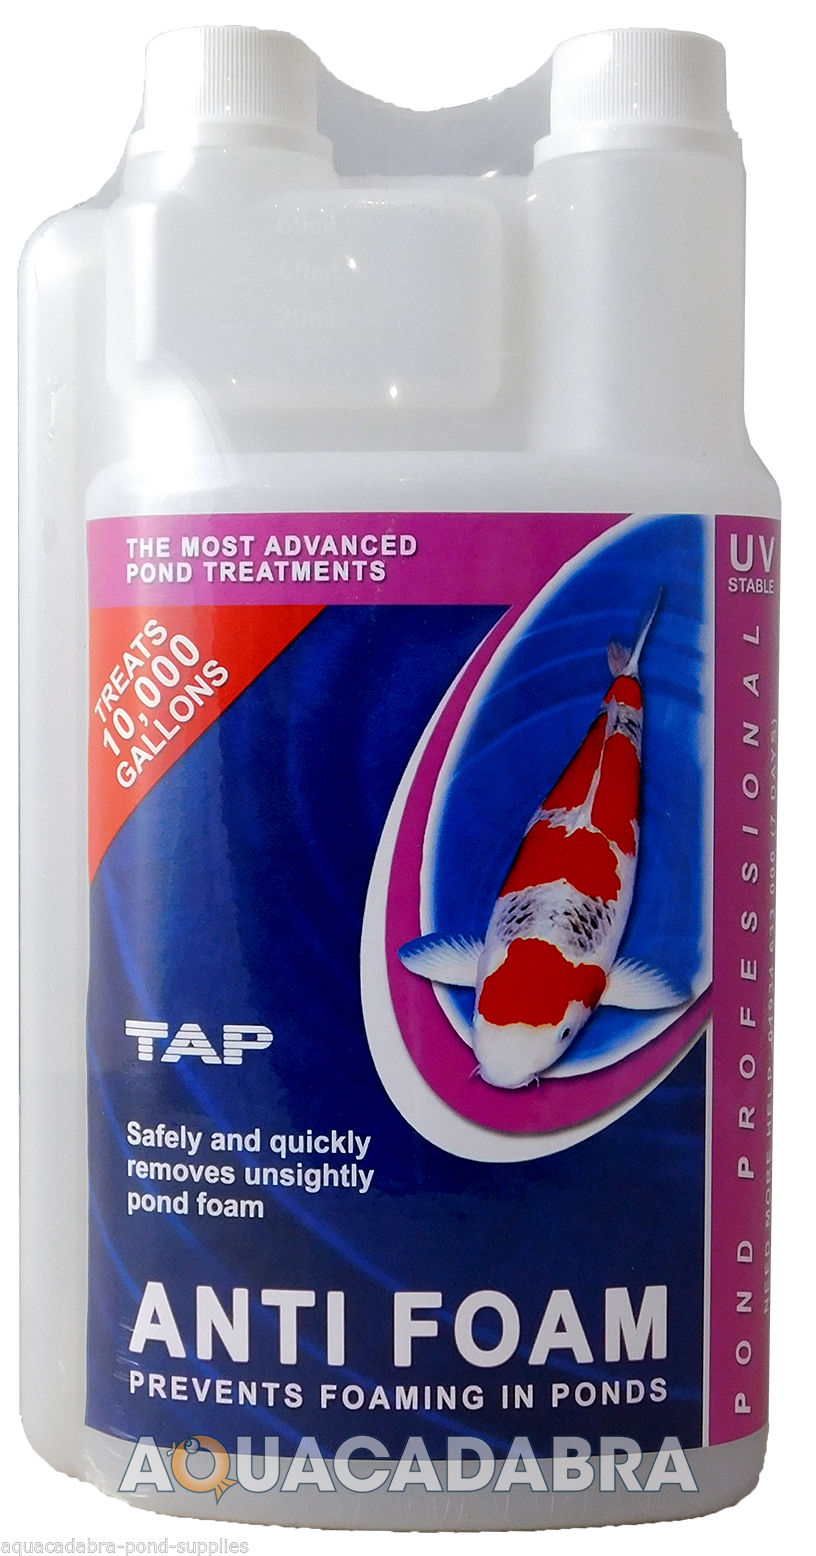 Tap pond professional anti foam remover safe harmless for Foam in koi pond